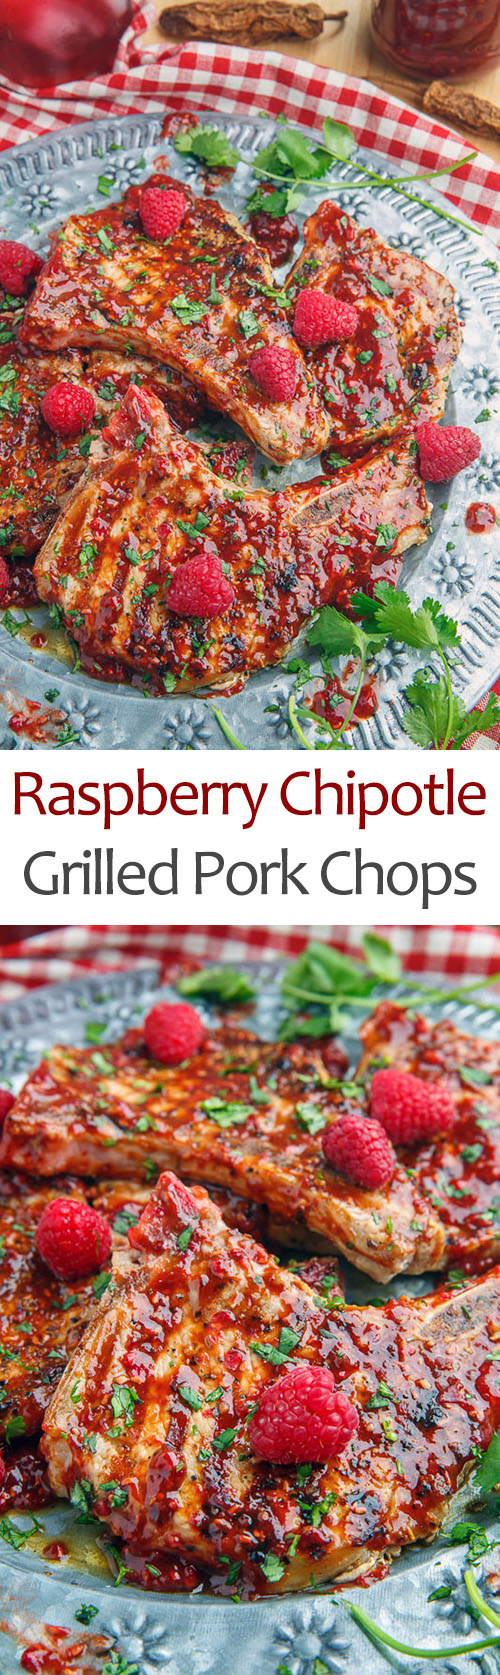 Raspberry Balsamic Chipotle Grilled Pork Chops